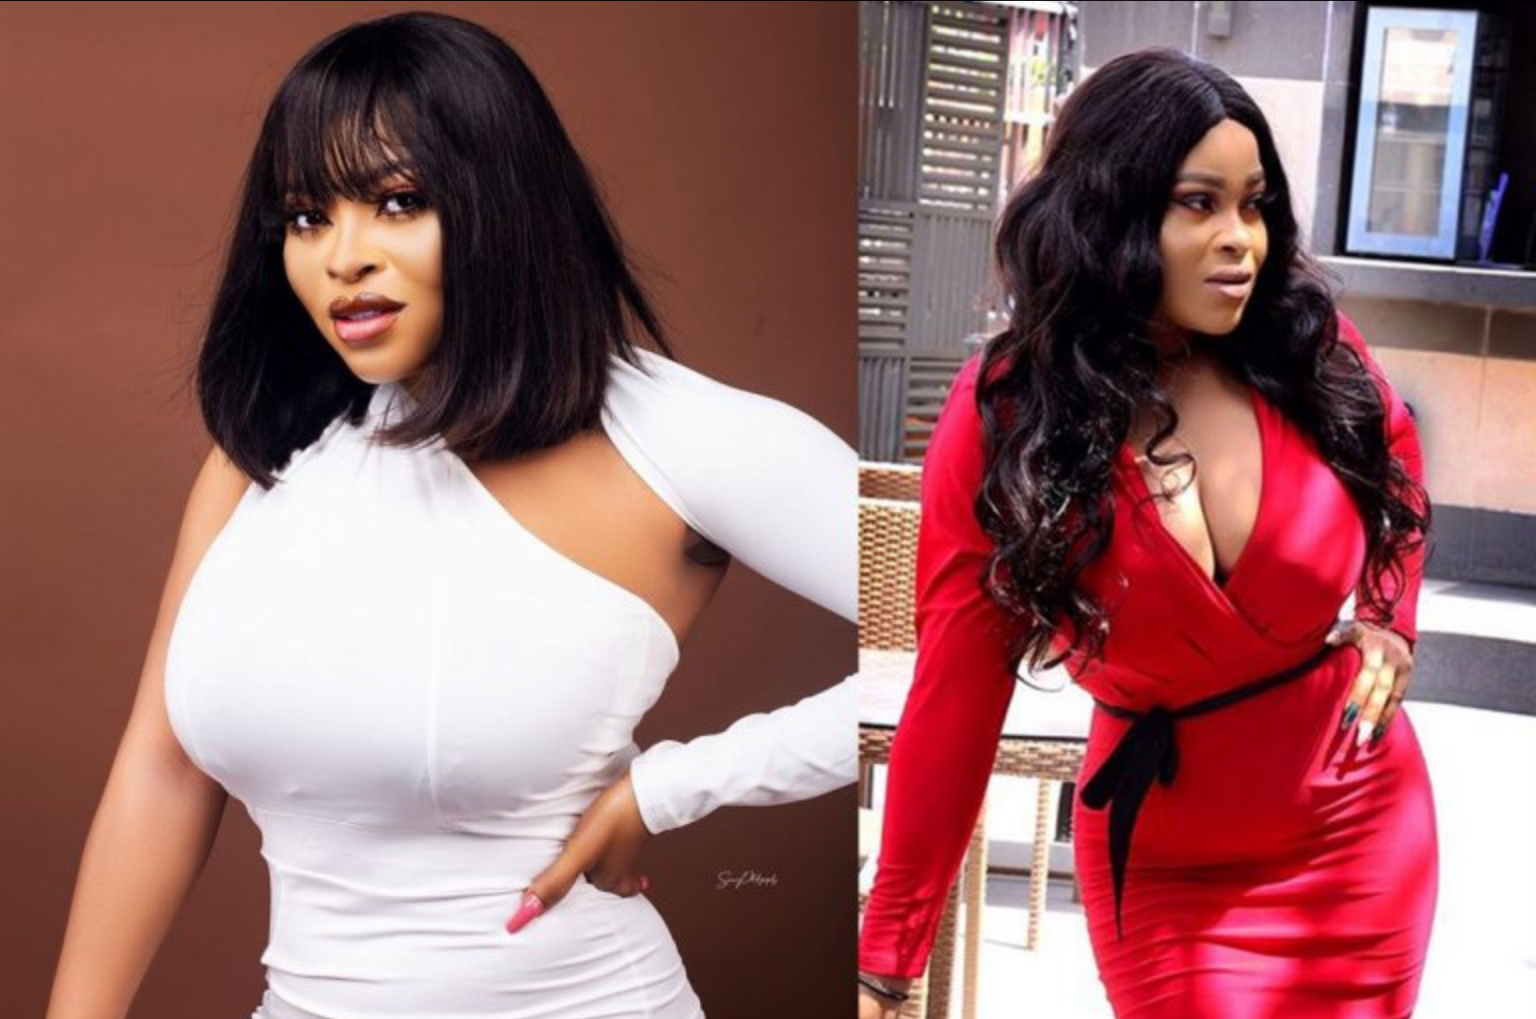 Nigerian Men Are Intimidated by Successful Women - Actress